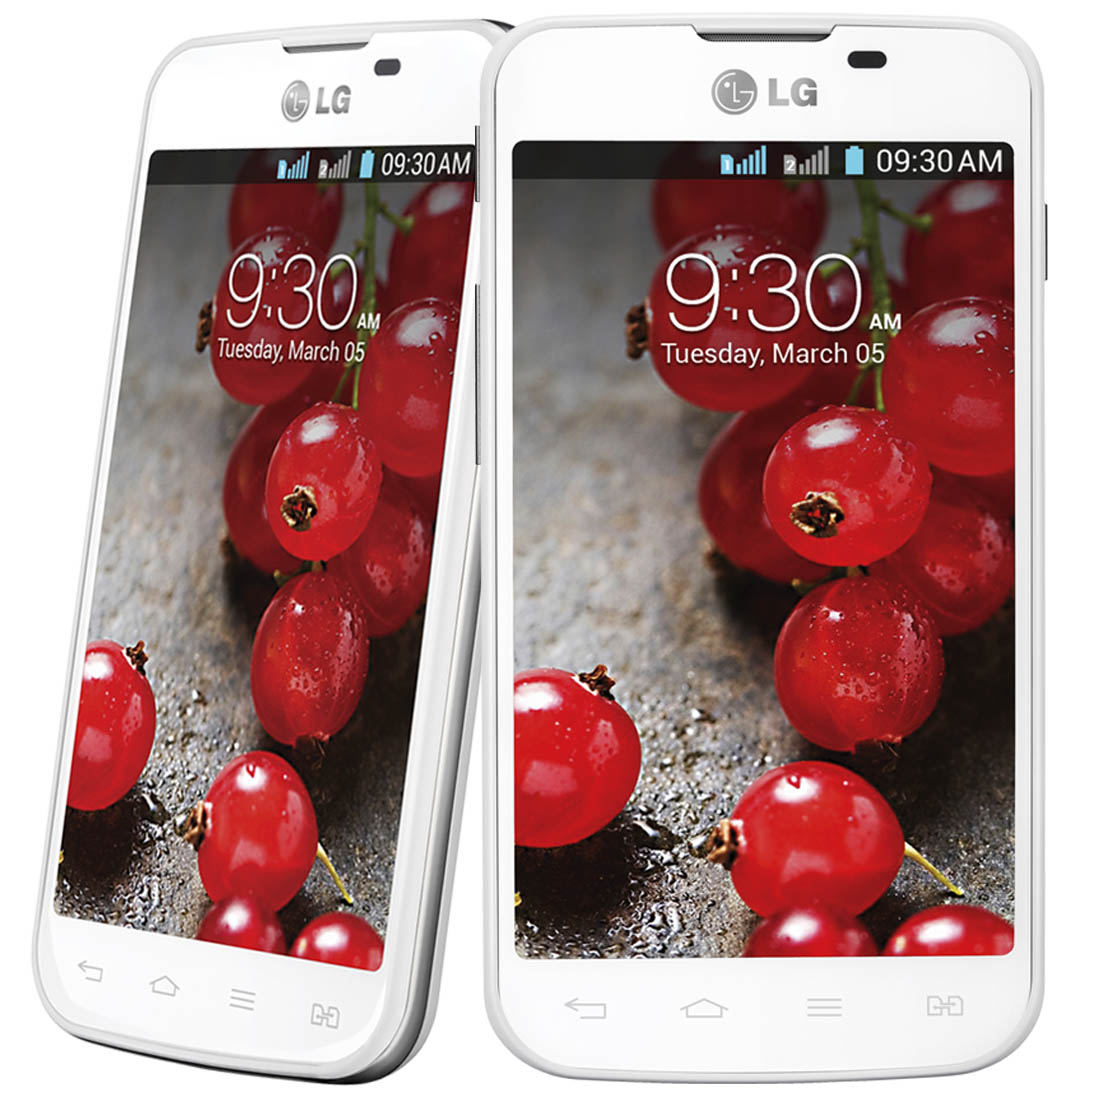 LGE455 Optimus L5 II Dual